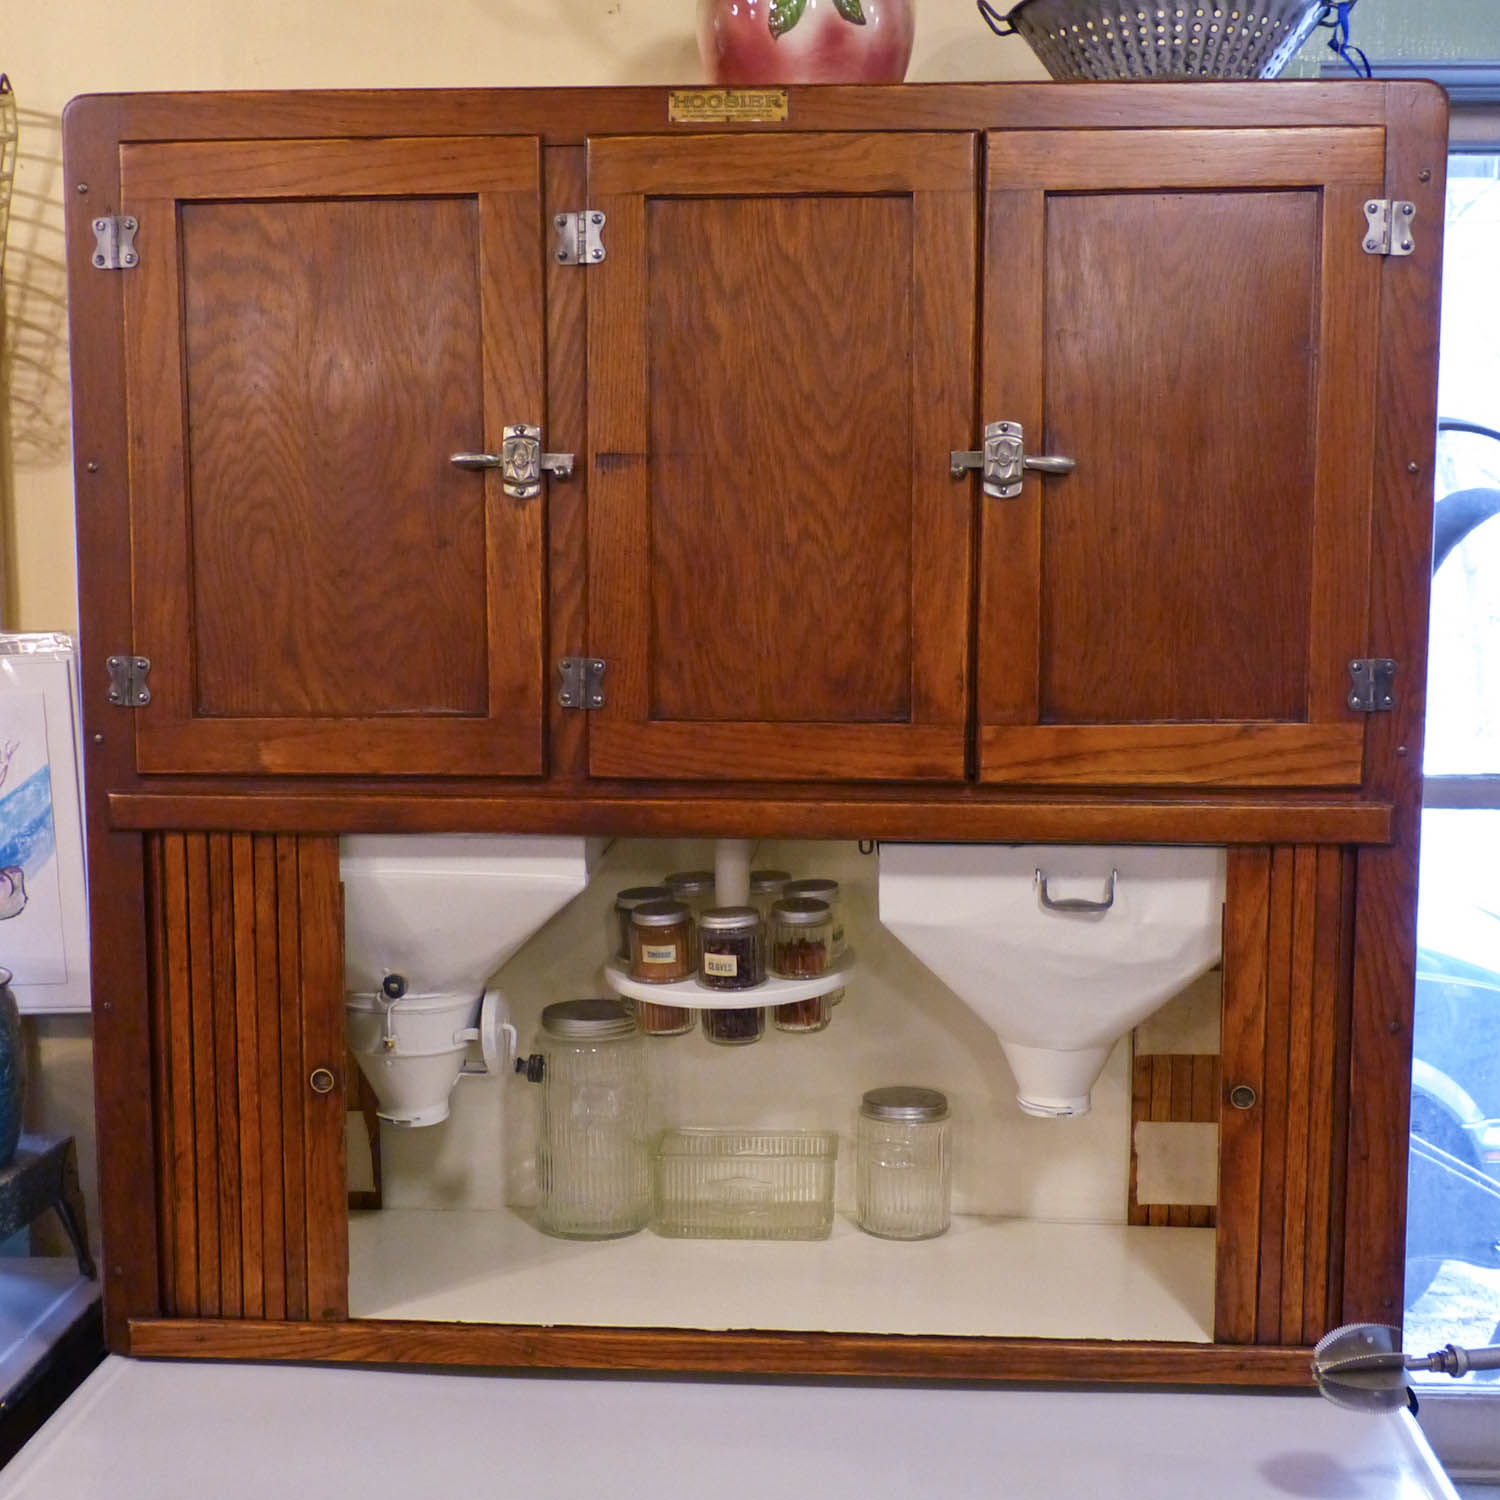 All The Hardware Is Original, It Has Two Lidded Drawers In The Base, A  Pull Out Sugar Bin And Top Load Flour Sifter, And Side Rolling Doors.